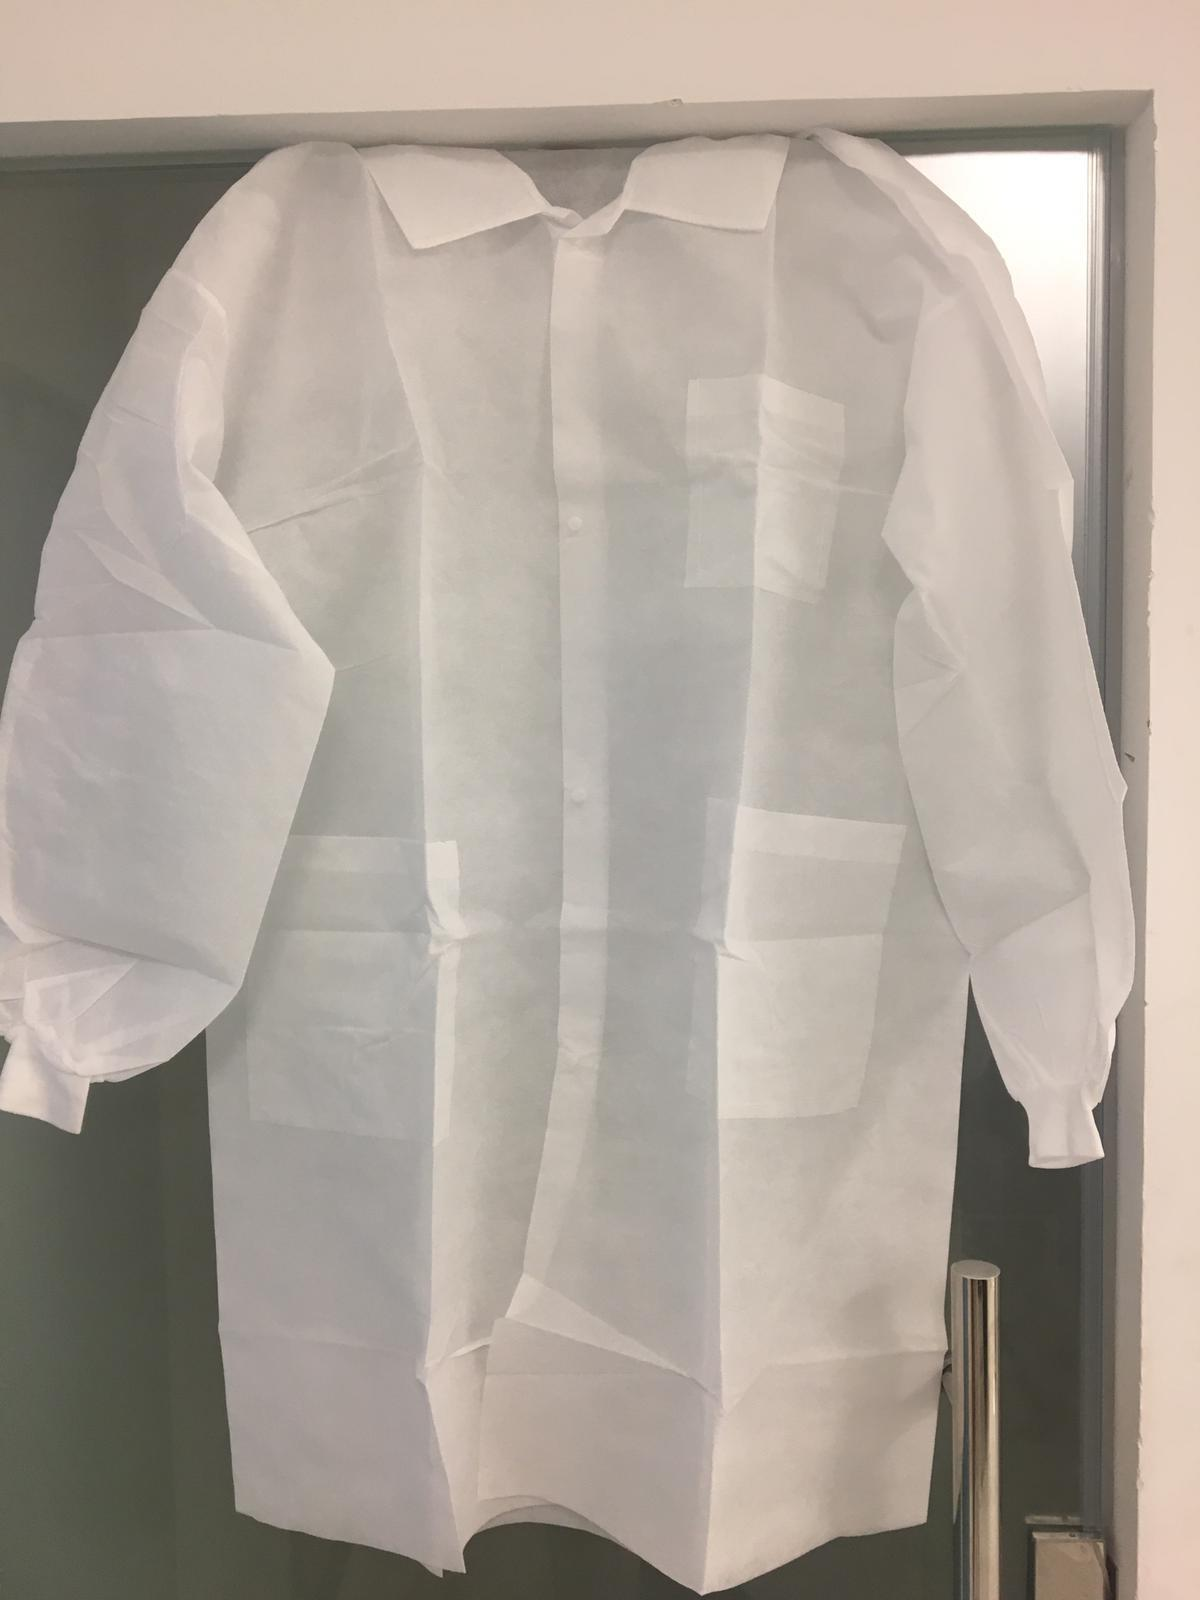 Disposable Lab Gowns